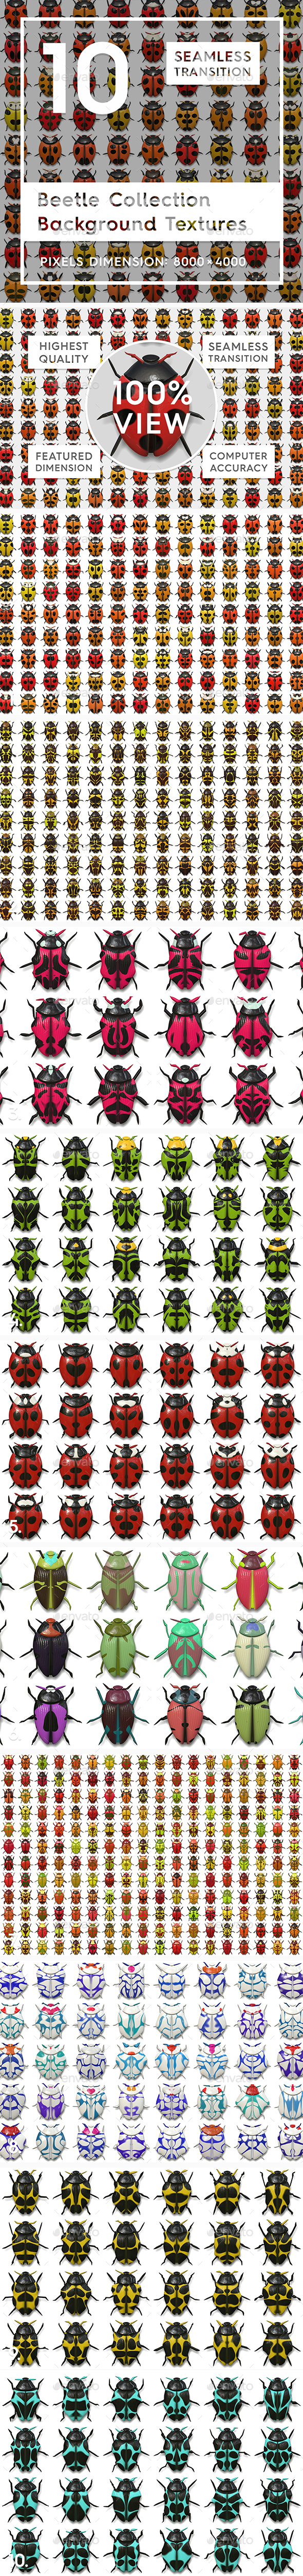 10 Beetle Collection Backgrounds - 3D Backgrounds